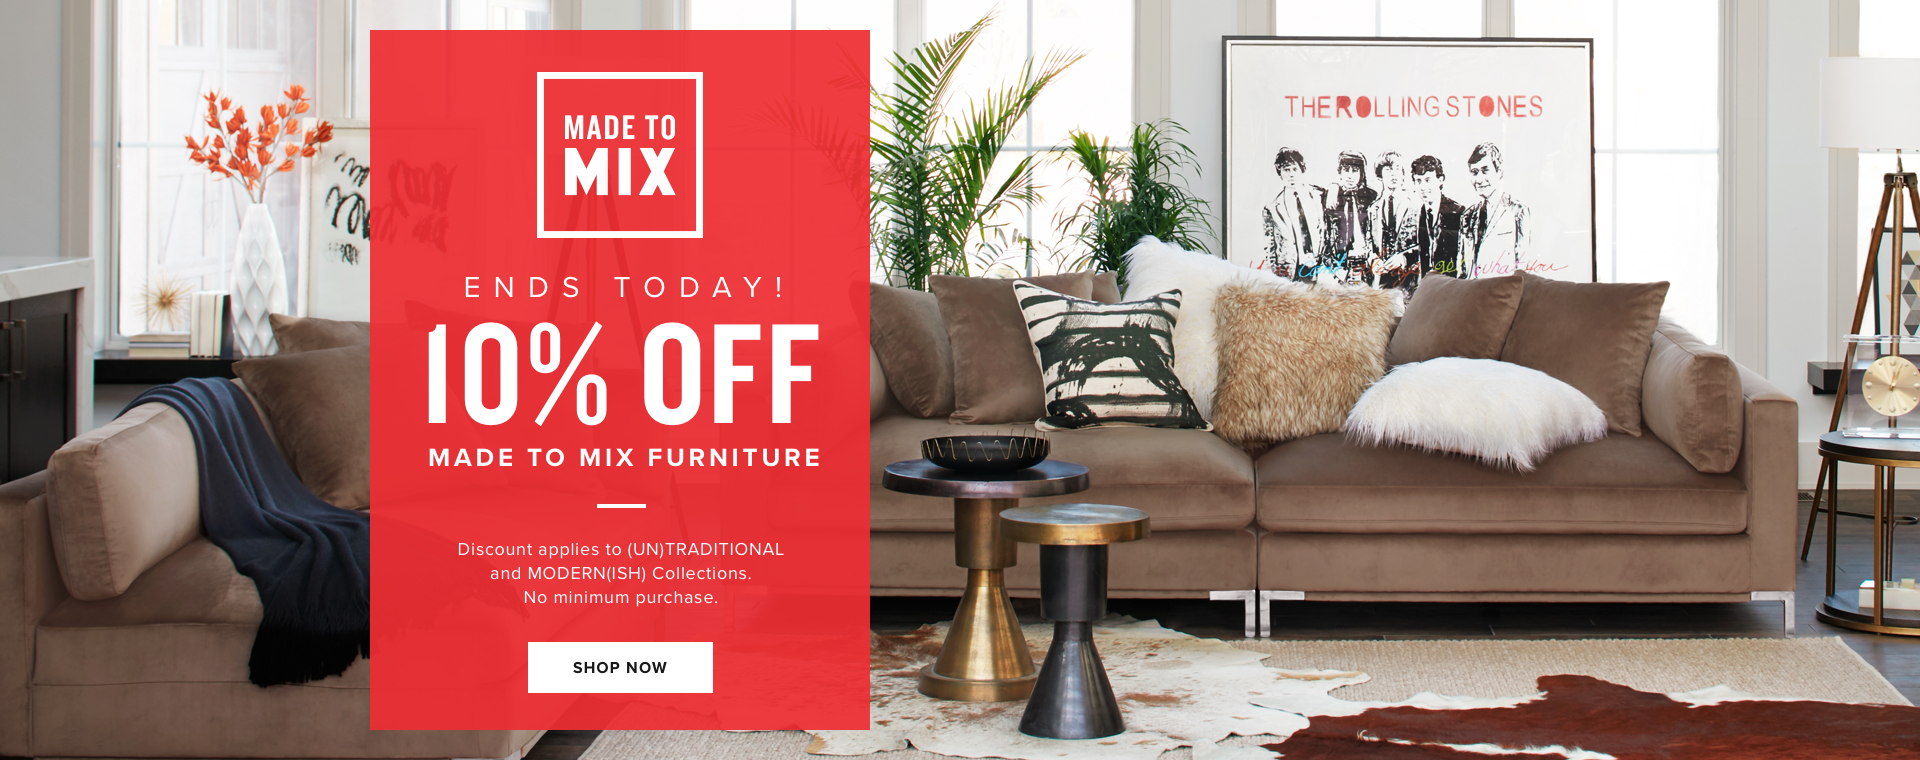 Final Days!  10% off made to mix furniture | shop now.